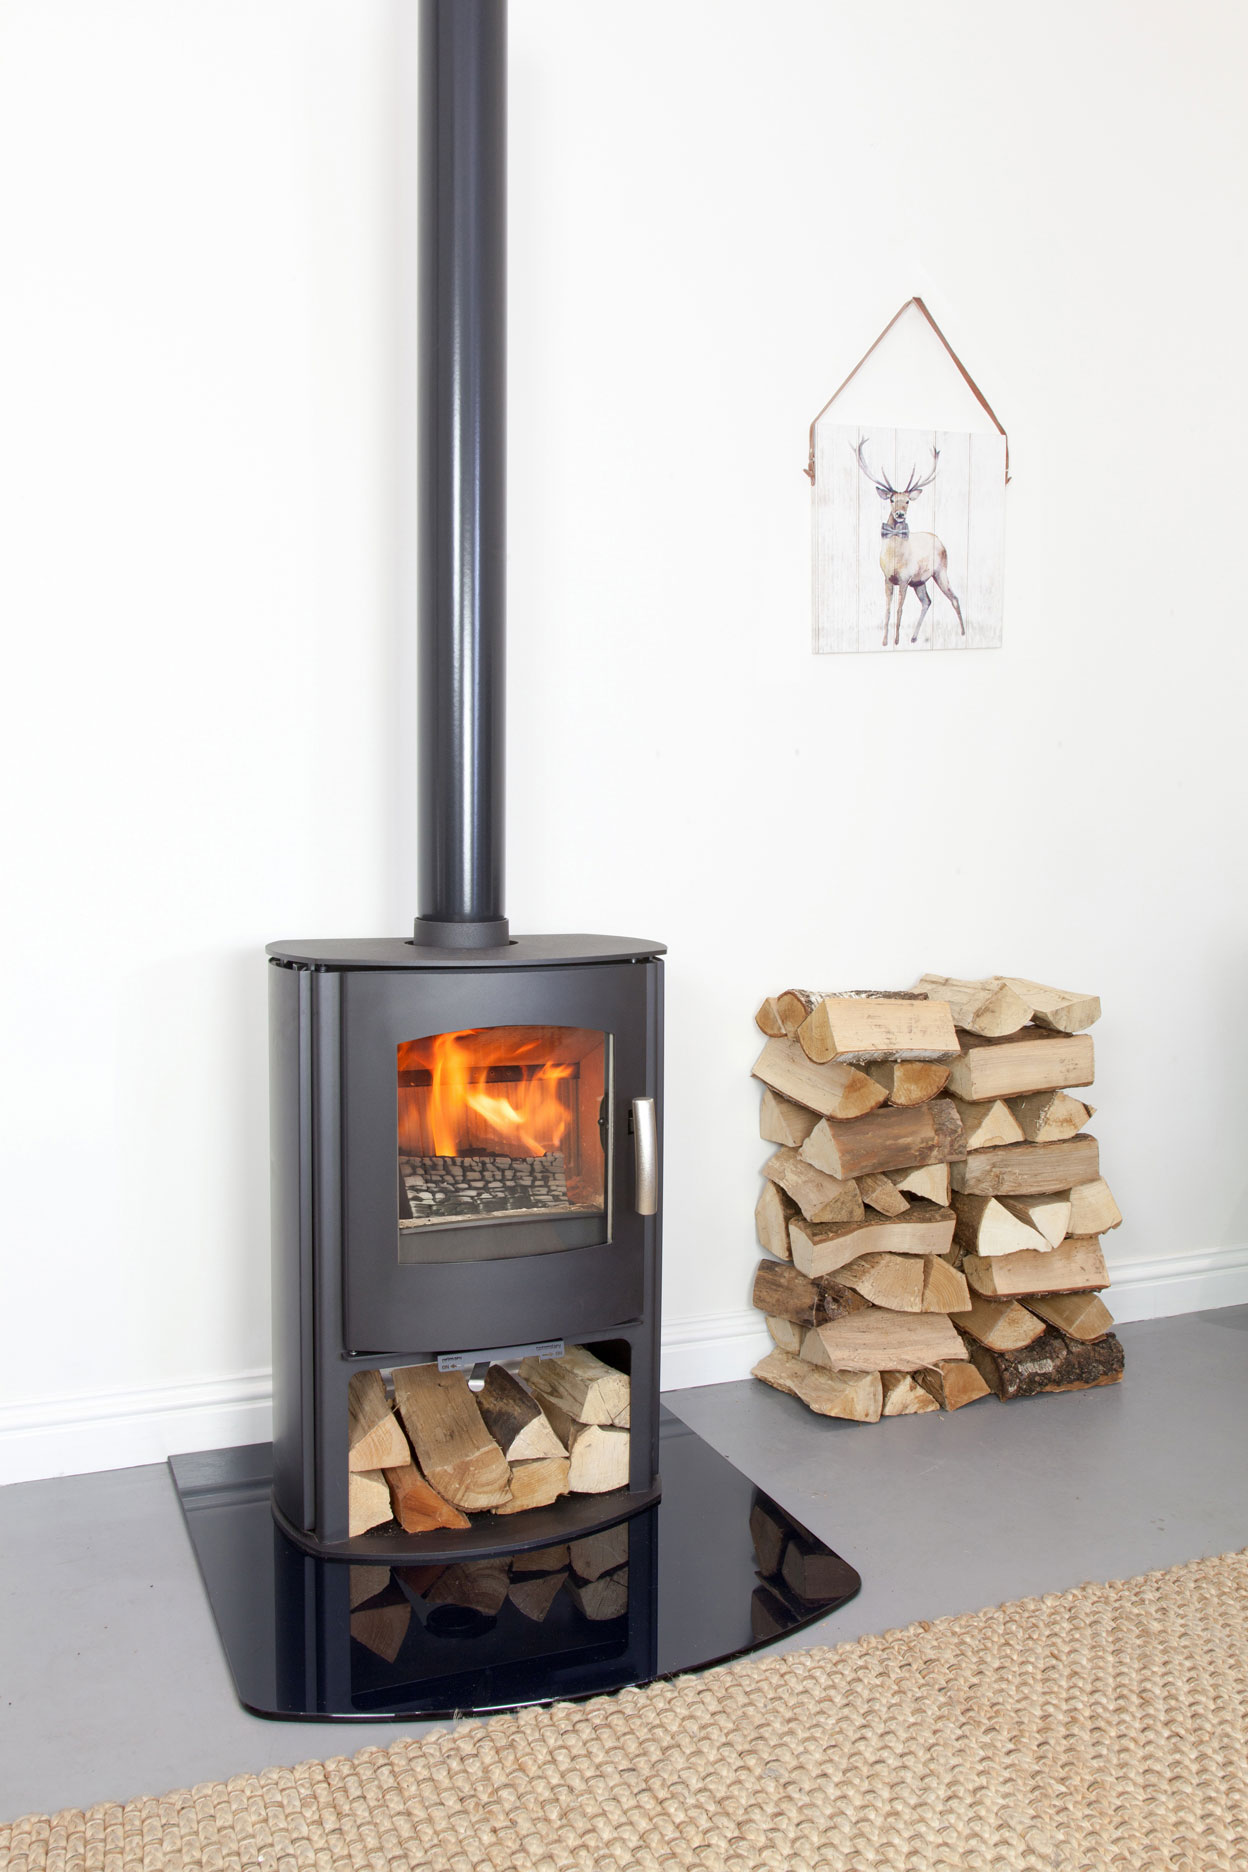 Home - Northern Fire and Stoves